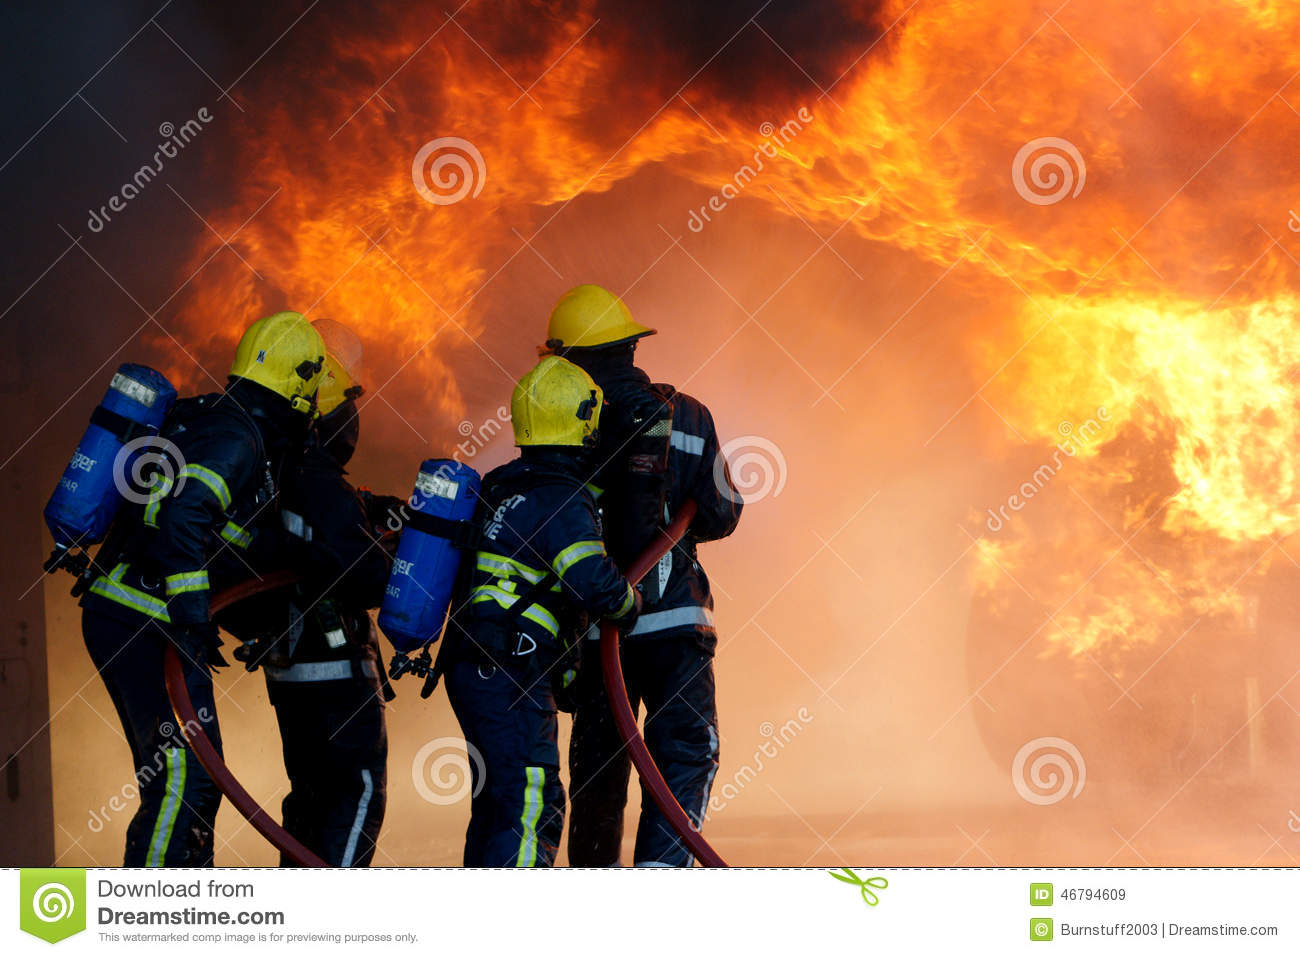 Fire fighters fighting large fire